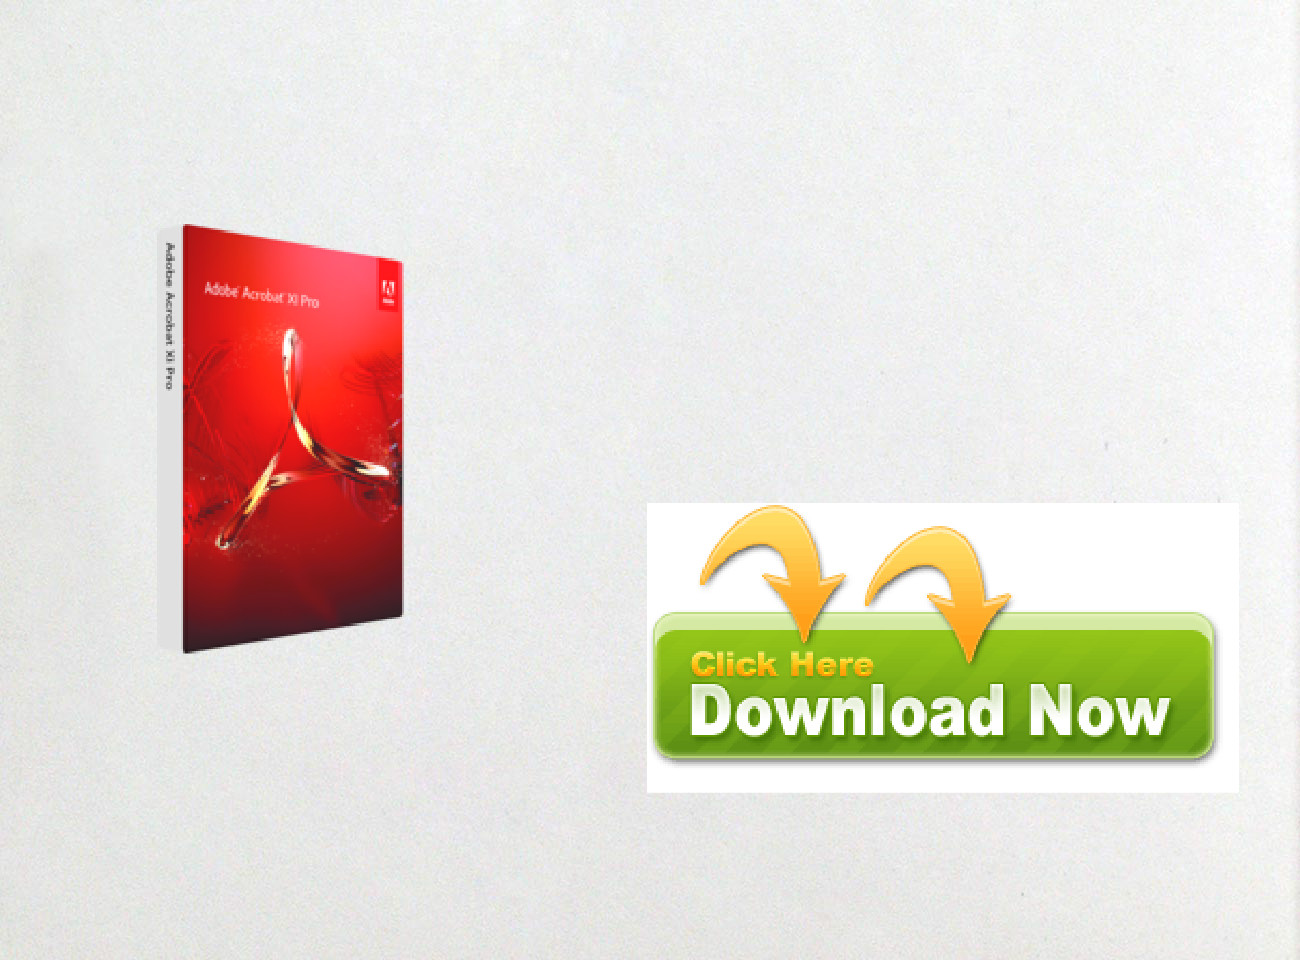 Purchase Adobe Acrobat XI Pro discount price: text, images